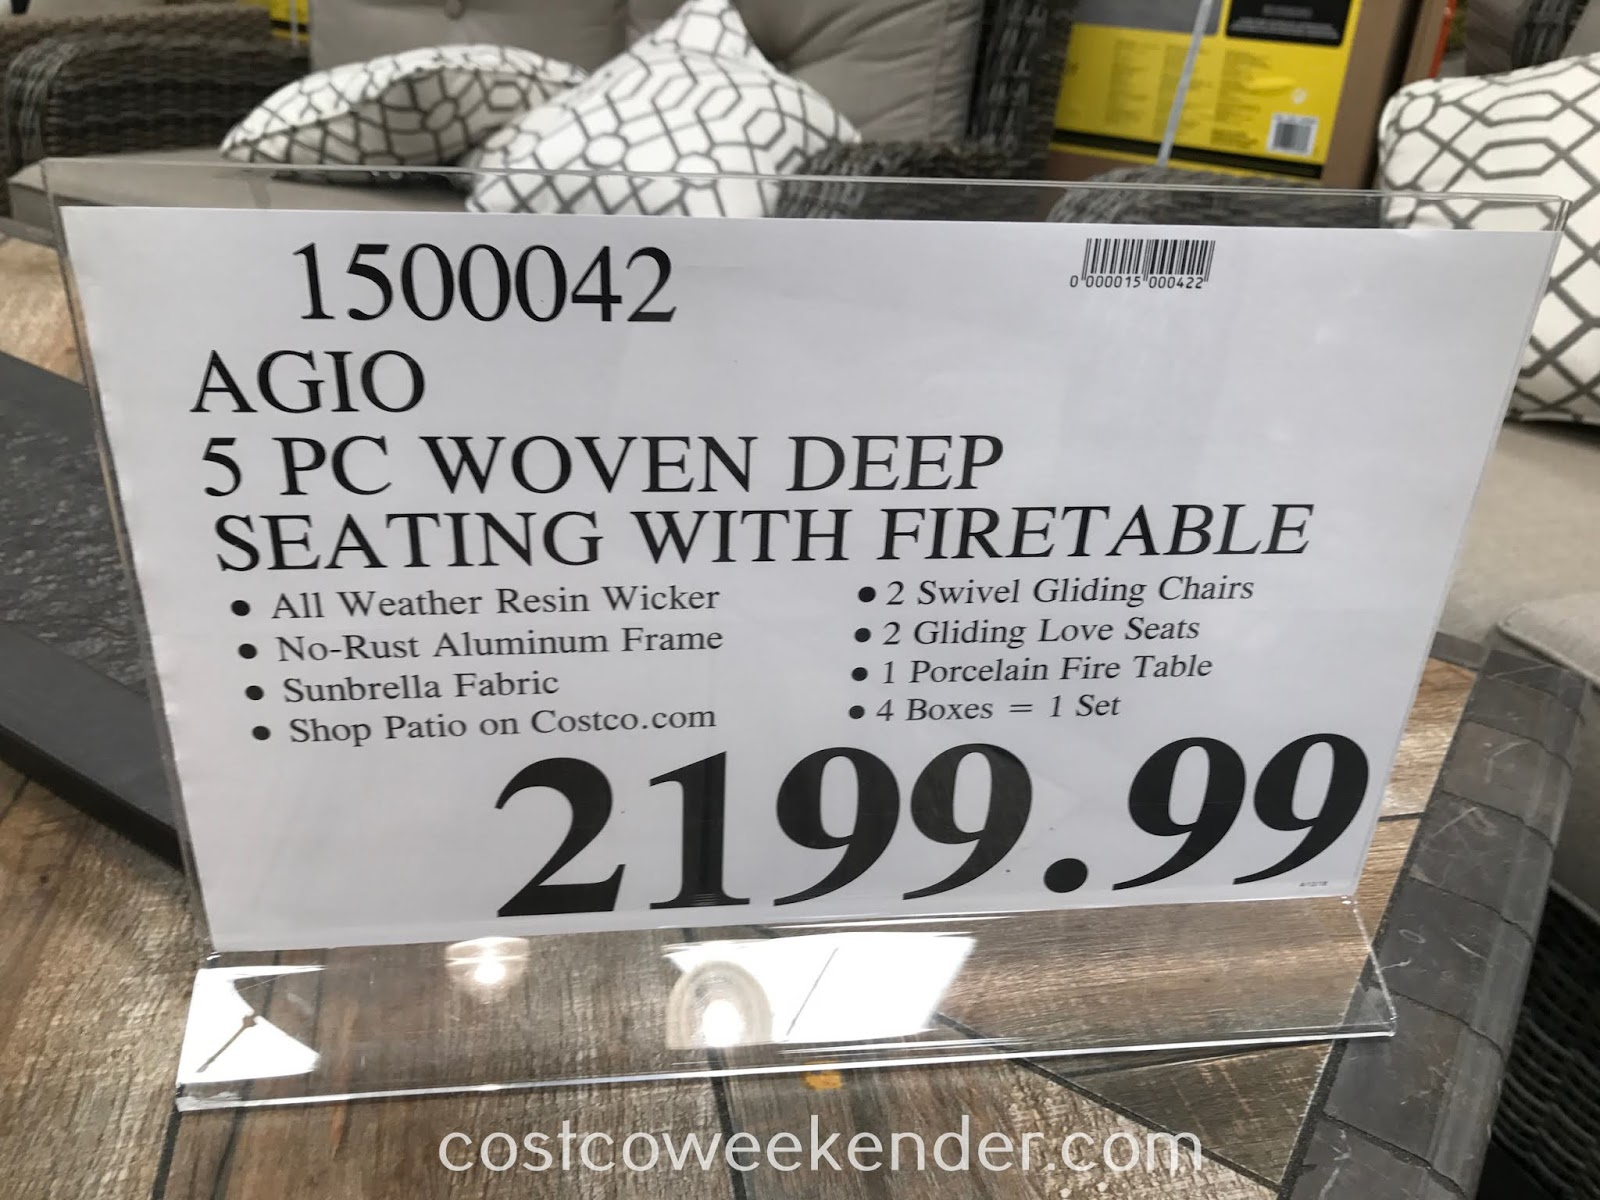 Deal for the Agio 5-piece Woven Deep Seating Set with Fire Table at Costco